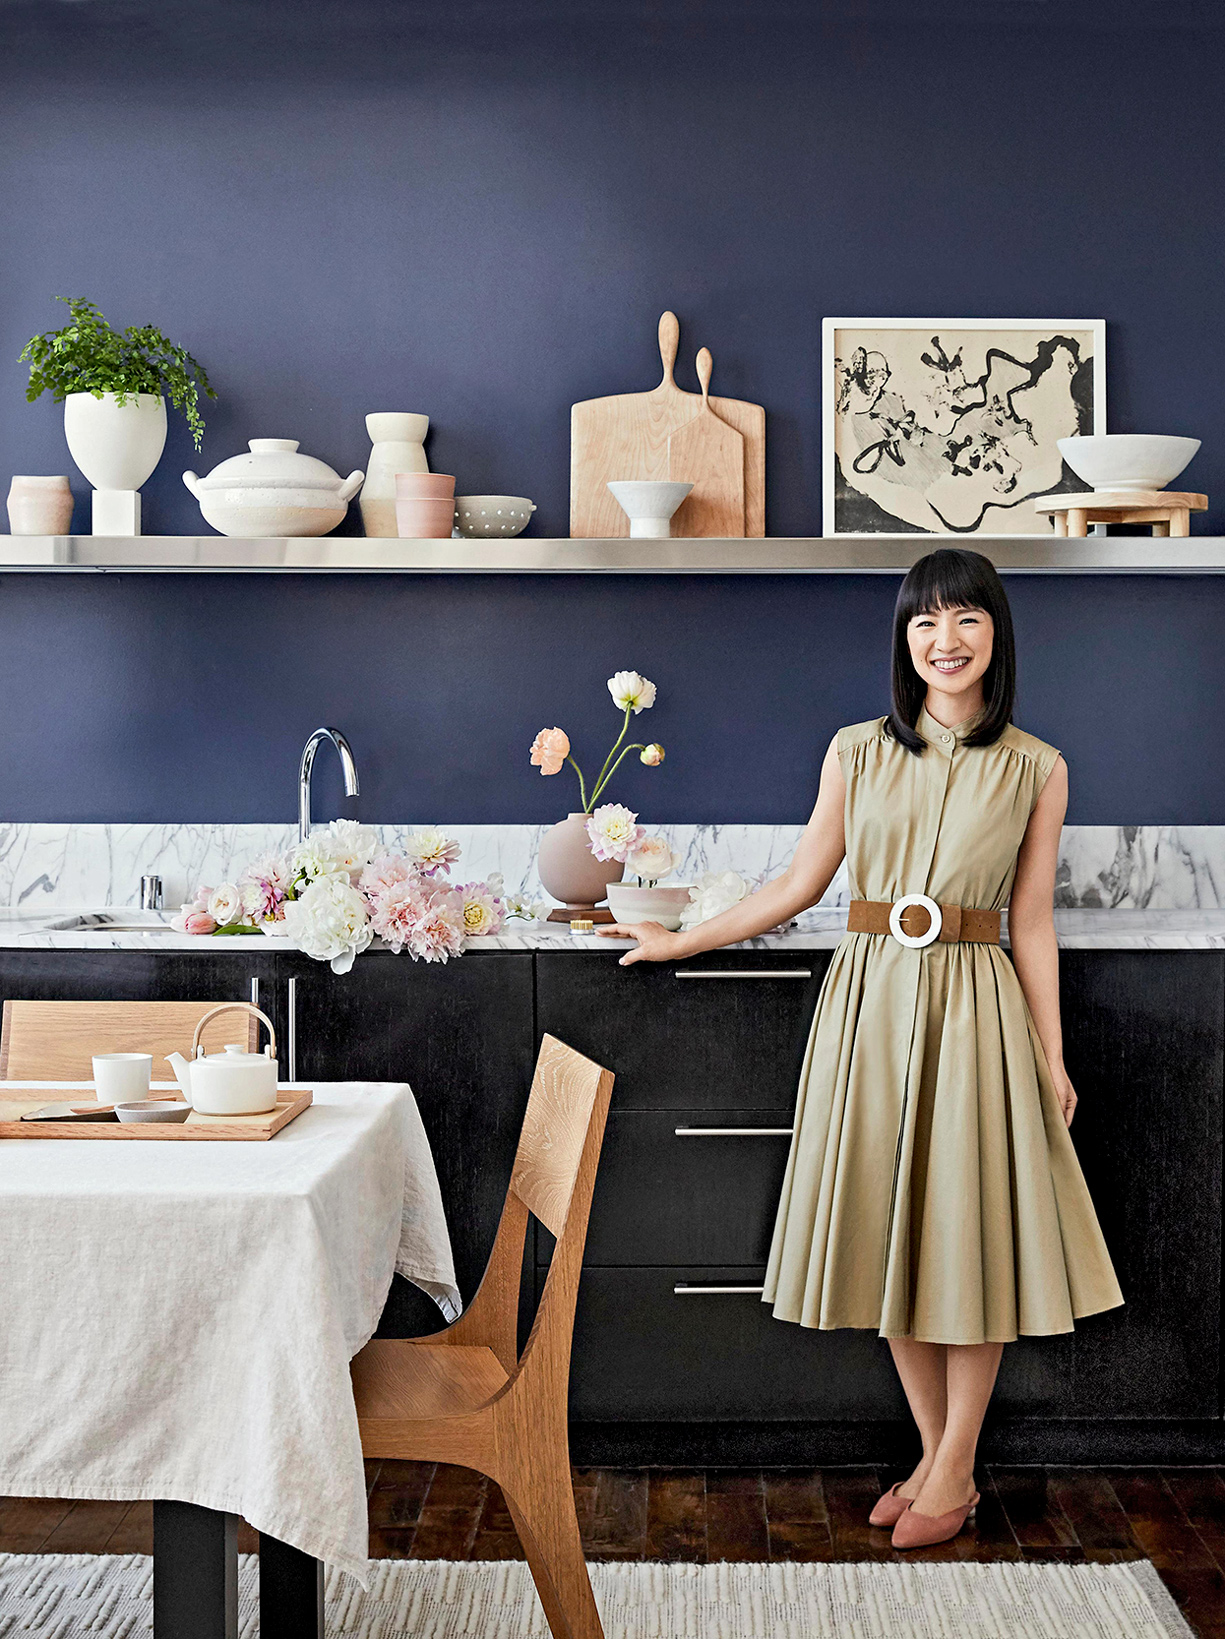 marie kondo in blue kitchen with flowers